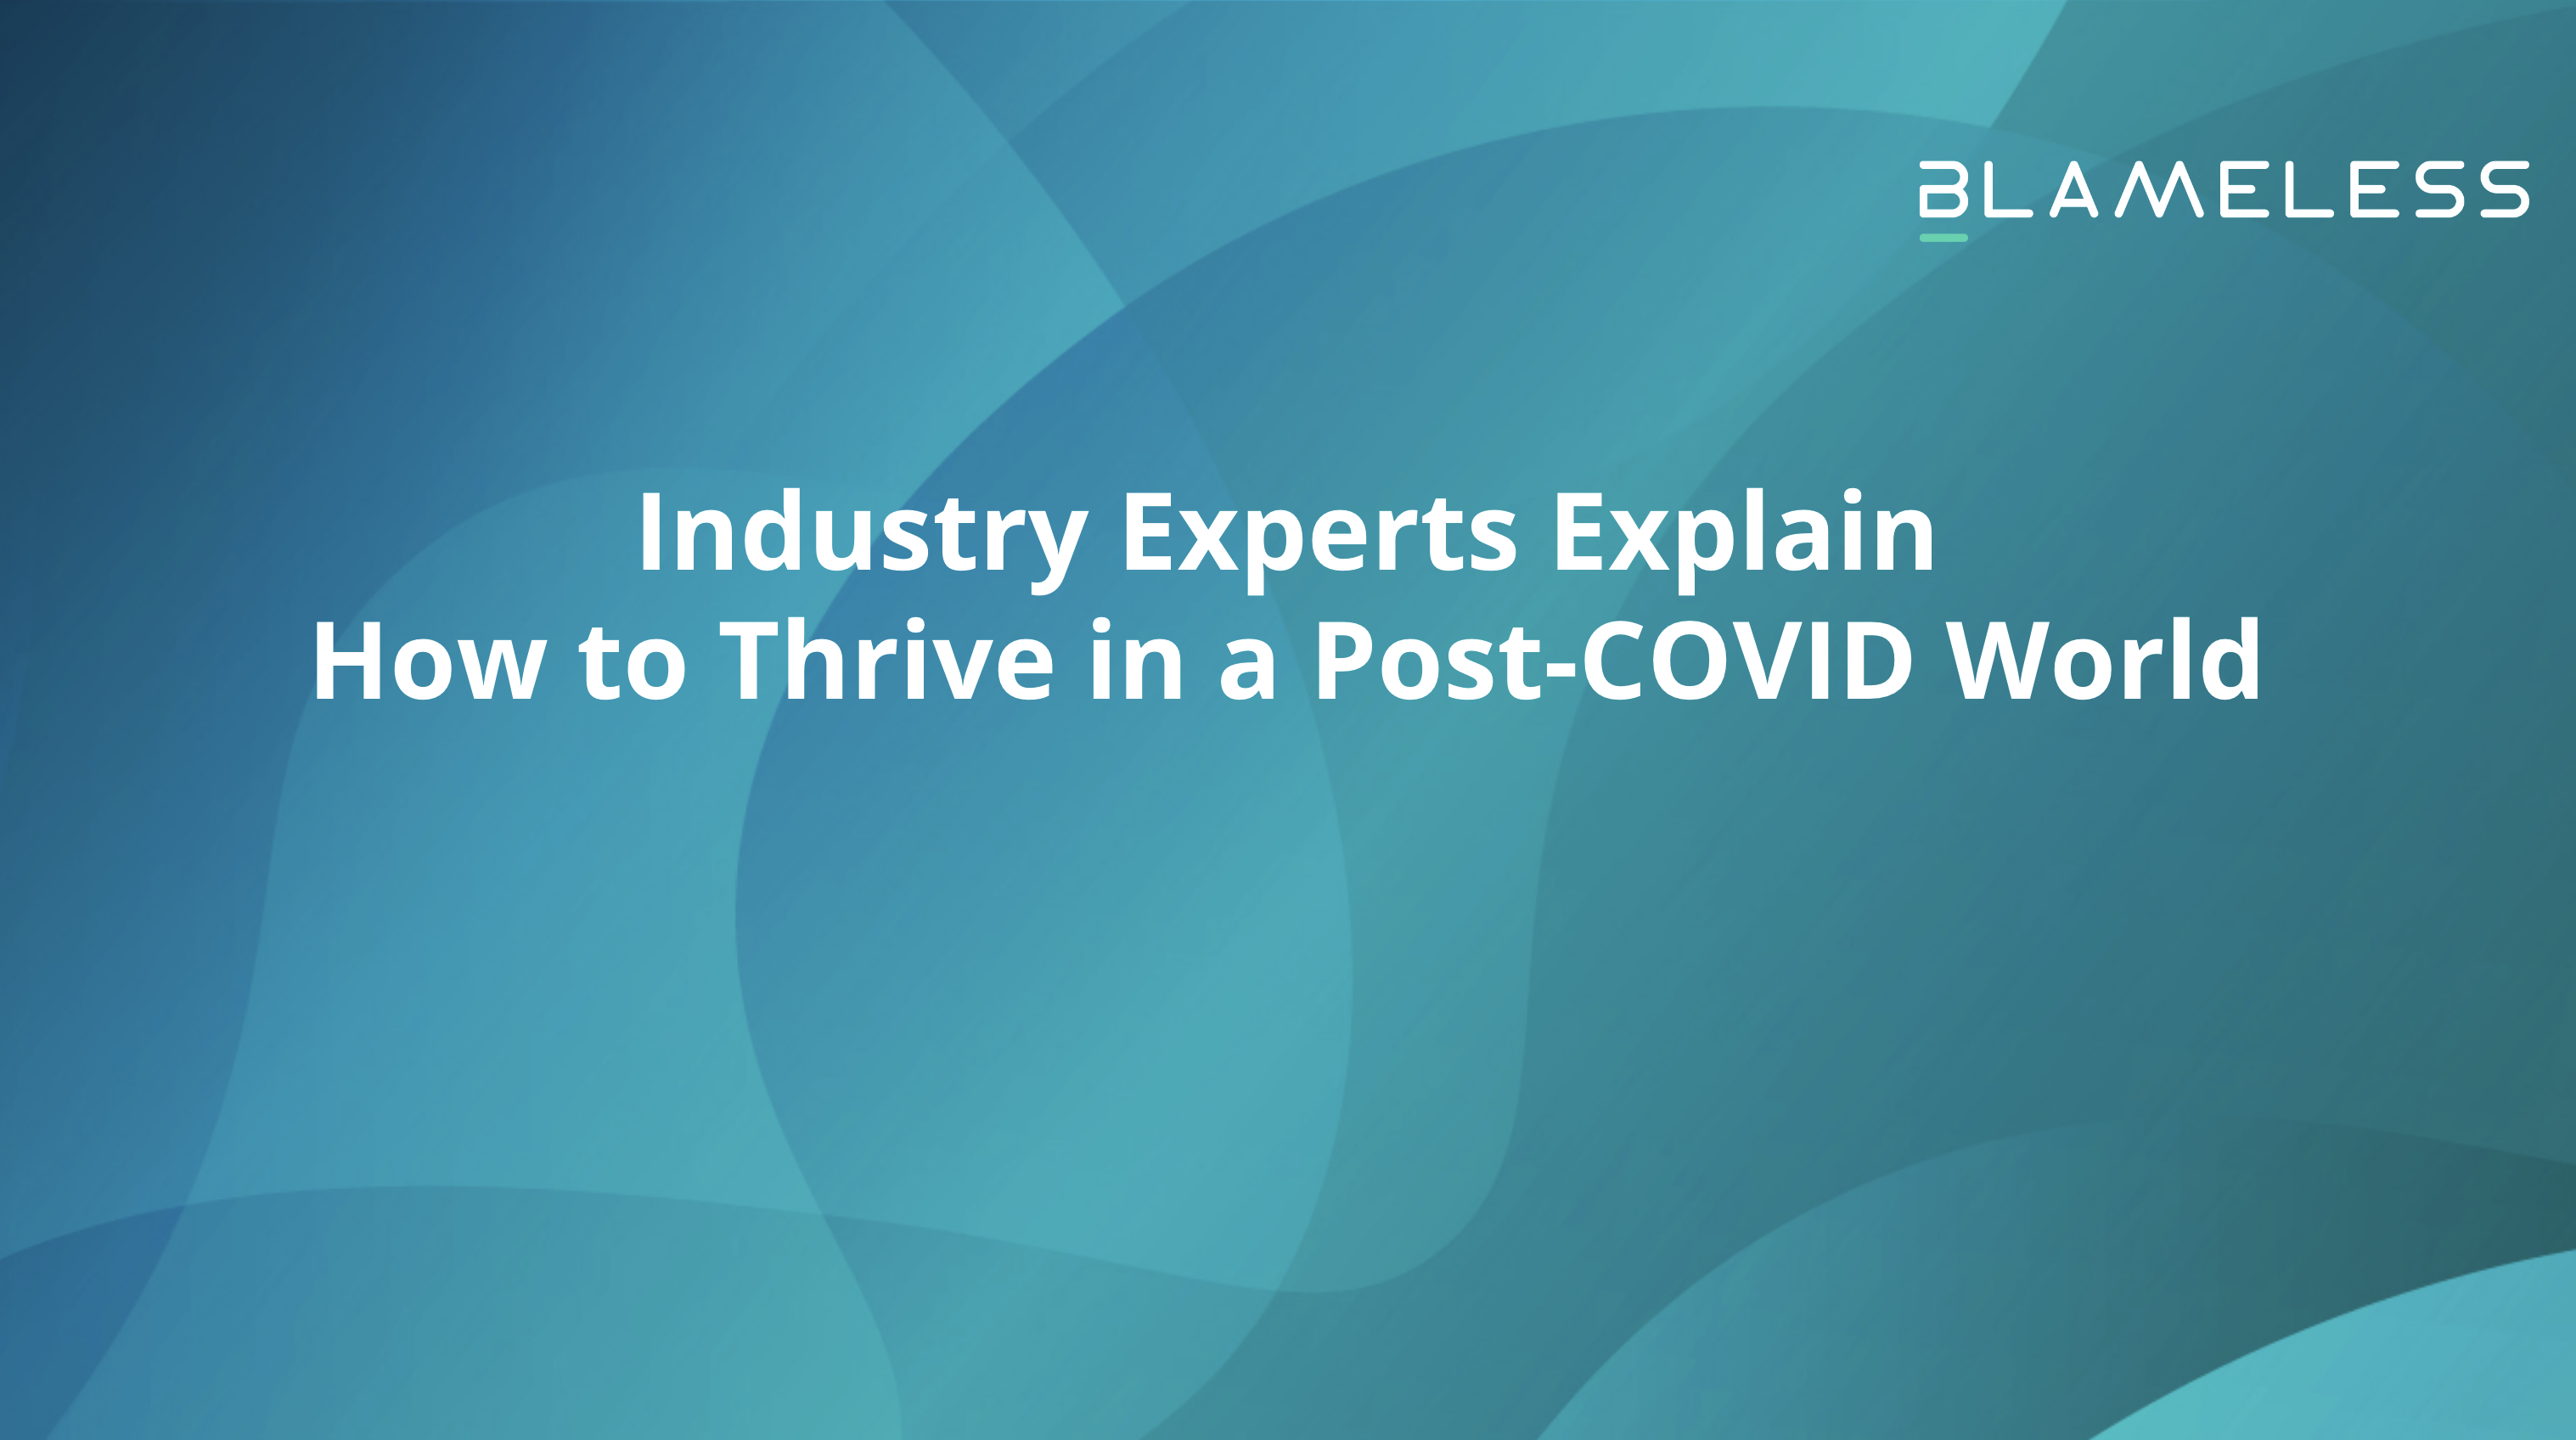 Industry Experts Explain how to Thrive in a Post-COVID World